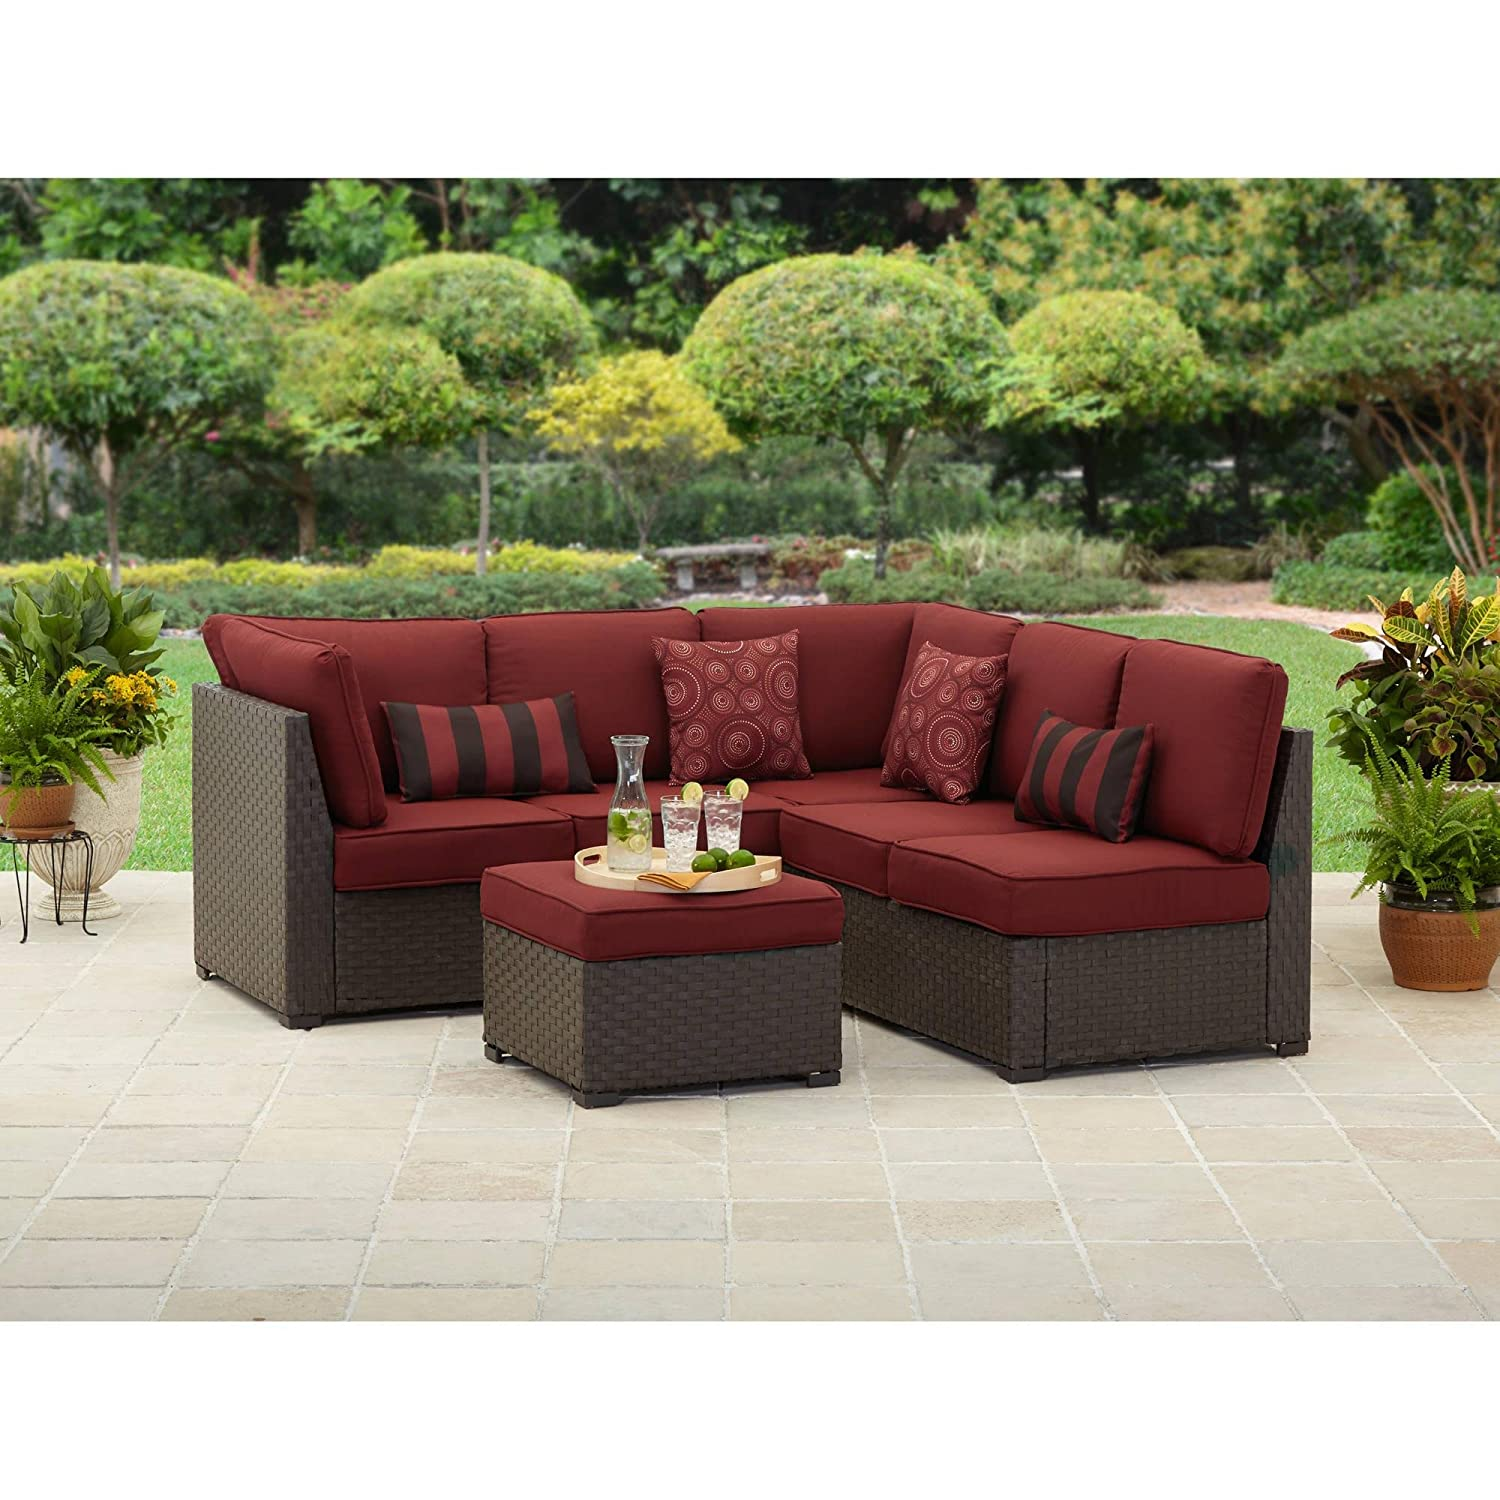 Nice Amazon.com : Rush Valley 3 Piece Outdoor Sectional Sofa Set, Red, Seats 5 :  Outdoor And Patio Furniture Sets : Garden U0026 Outdoor